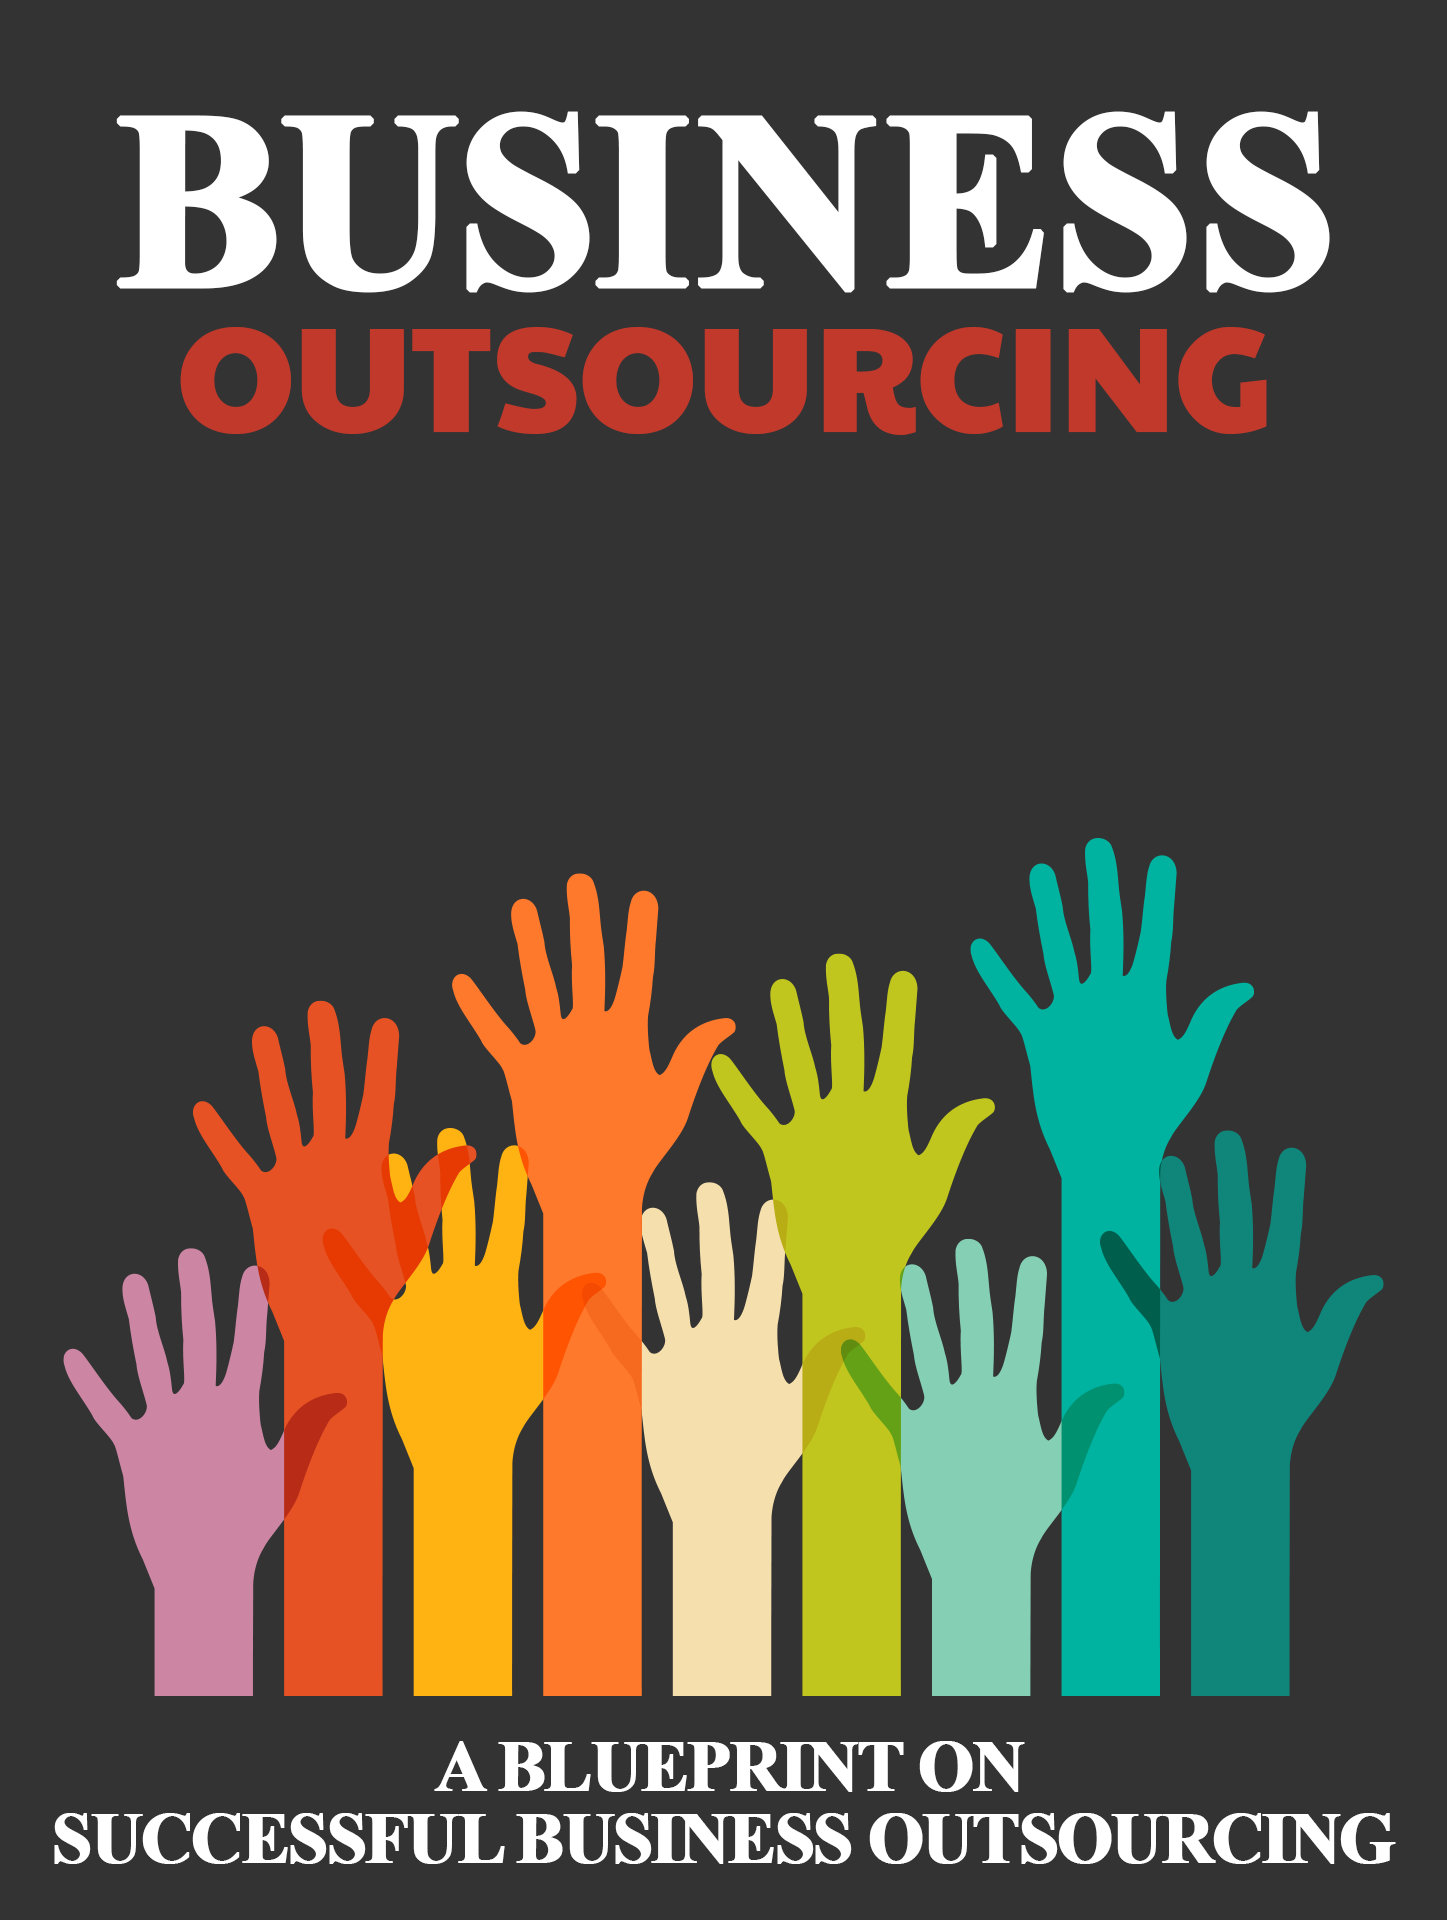 THE OUTSOURCING BUSINESS TODAY AND FUTURE